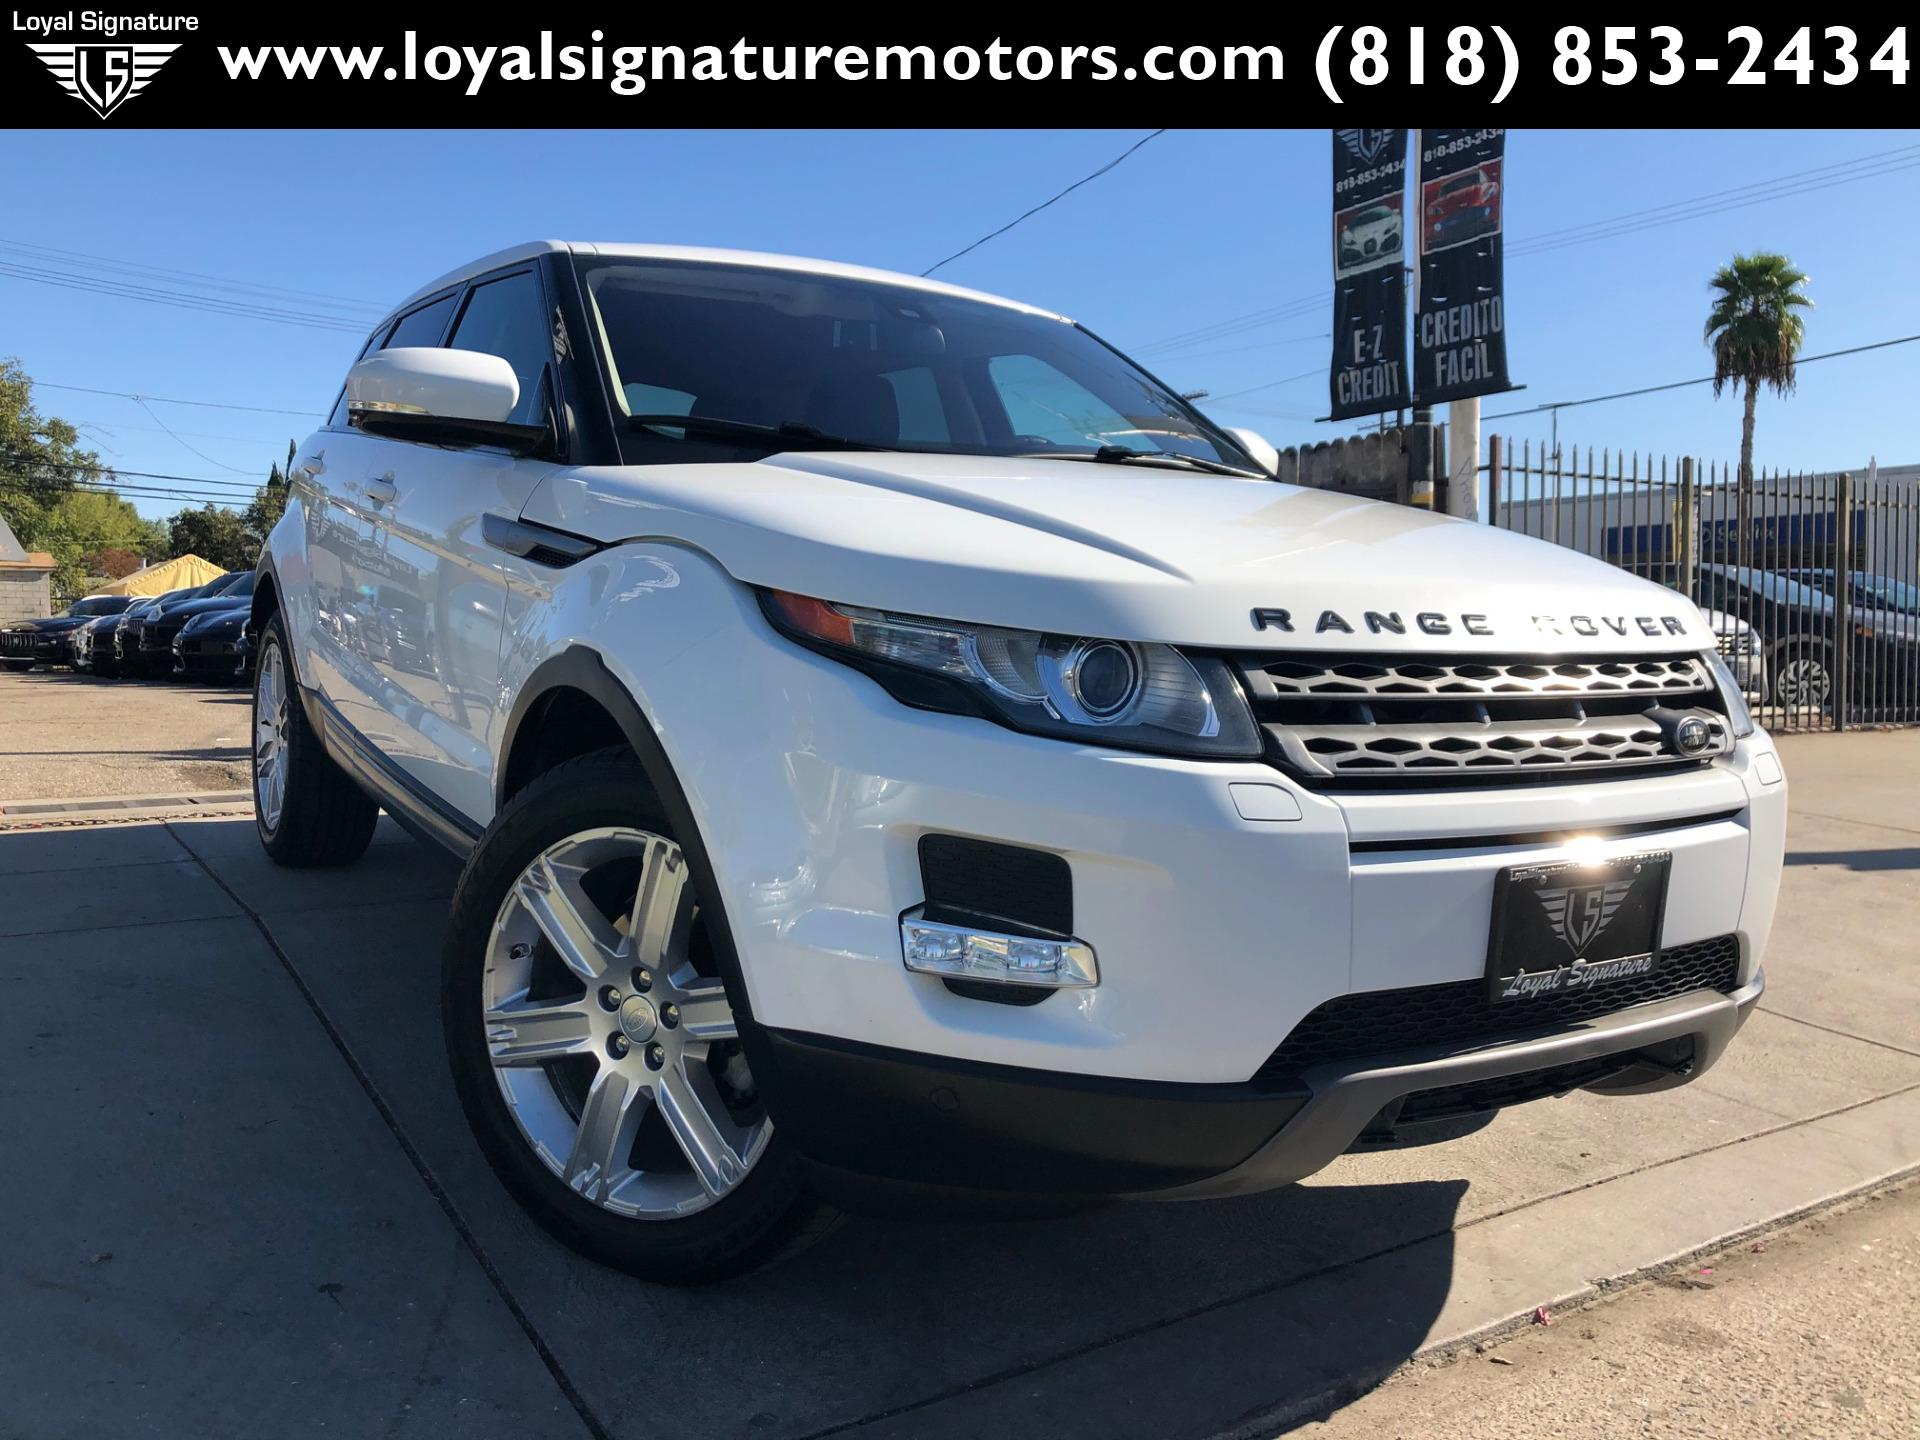 Used 2013 Land Rover Range Rover Evoque Pure Plus | Van Nuys, CA